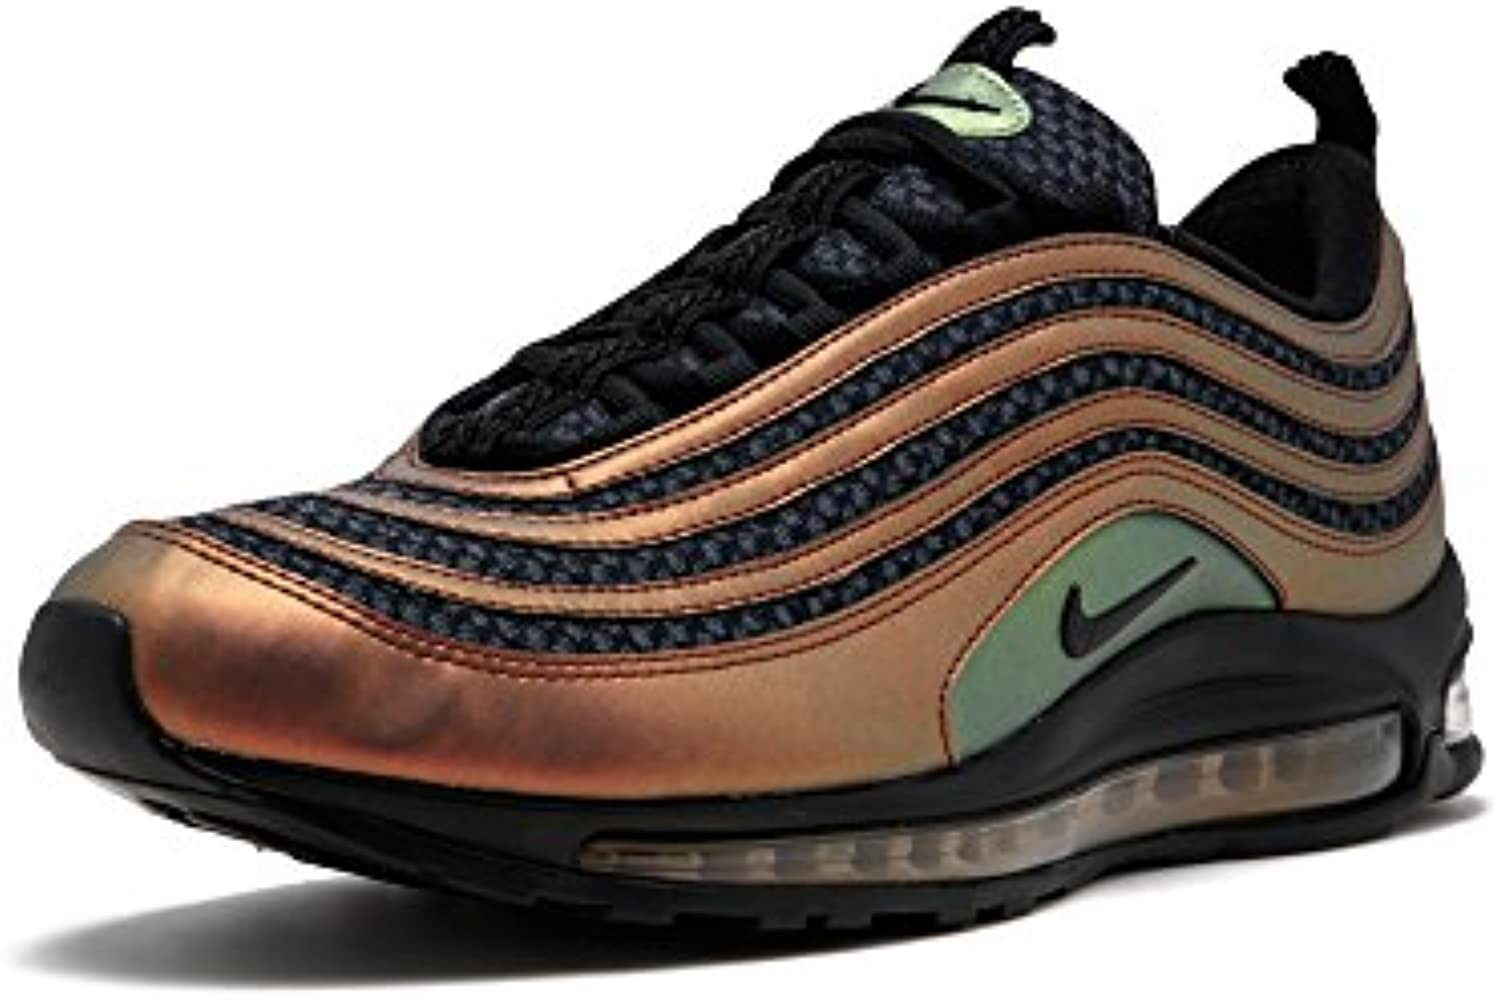 Nike Air Max 97 Ultra Skepta - Multi Color/Black-Vivid Sulfur Trainer -